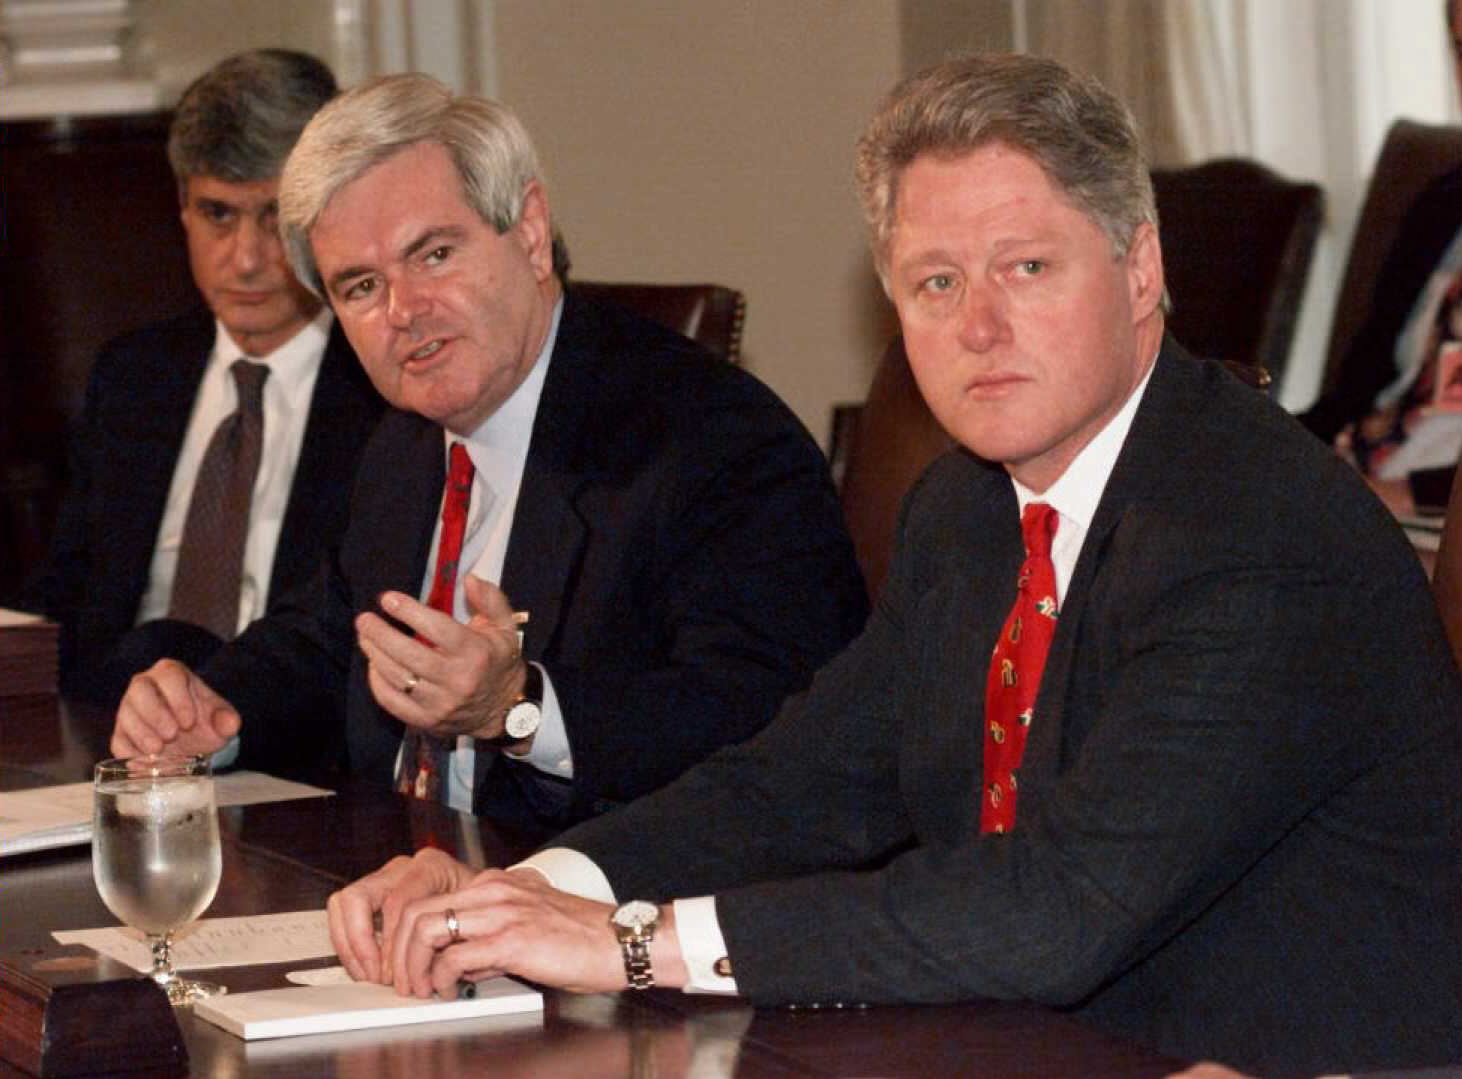 US Speaker of the House Newt Gingrich (L) and US President Bill Clinton (R) begin a bi-partisan meeting on the stalled budget talks at the White House, 22 December. (J. DAVID AKE/AFP/Getty Images)